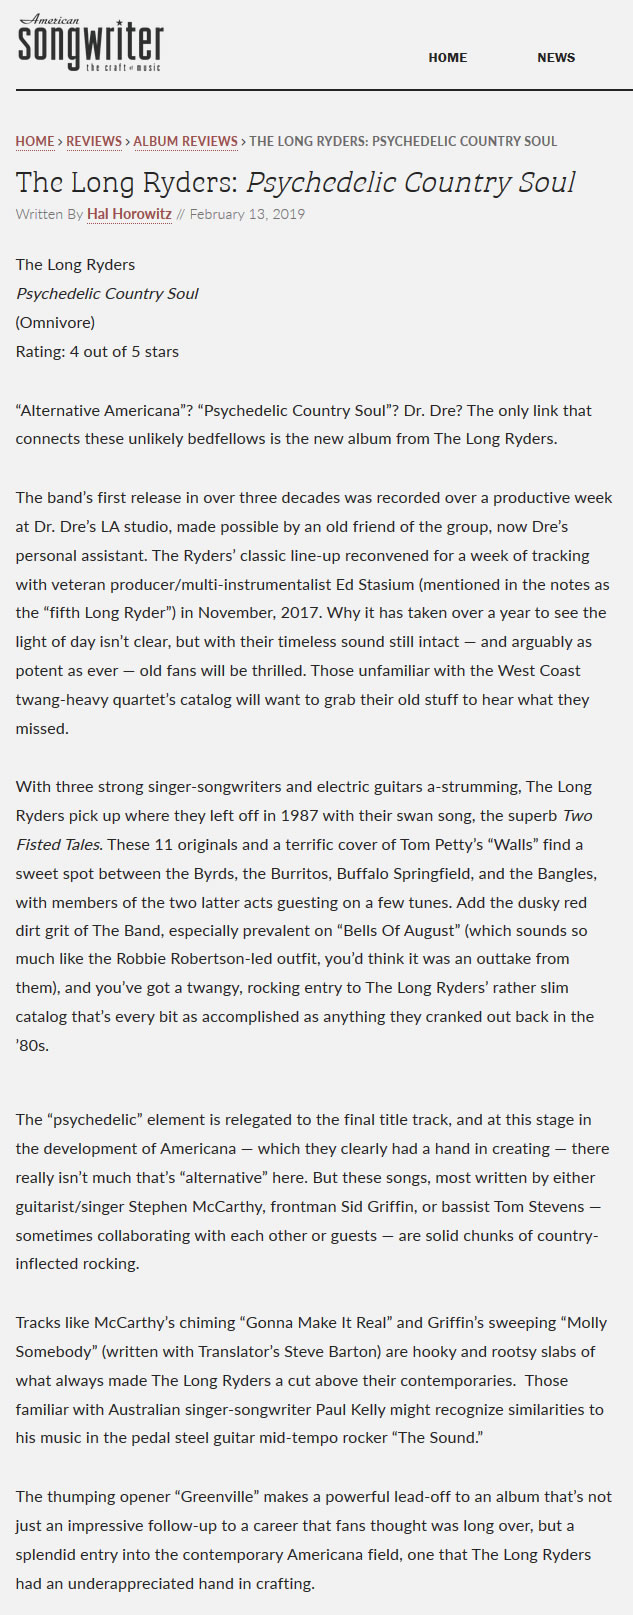 The Long Ryders - The Reviews